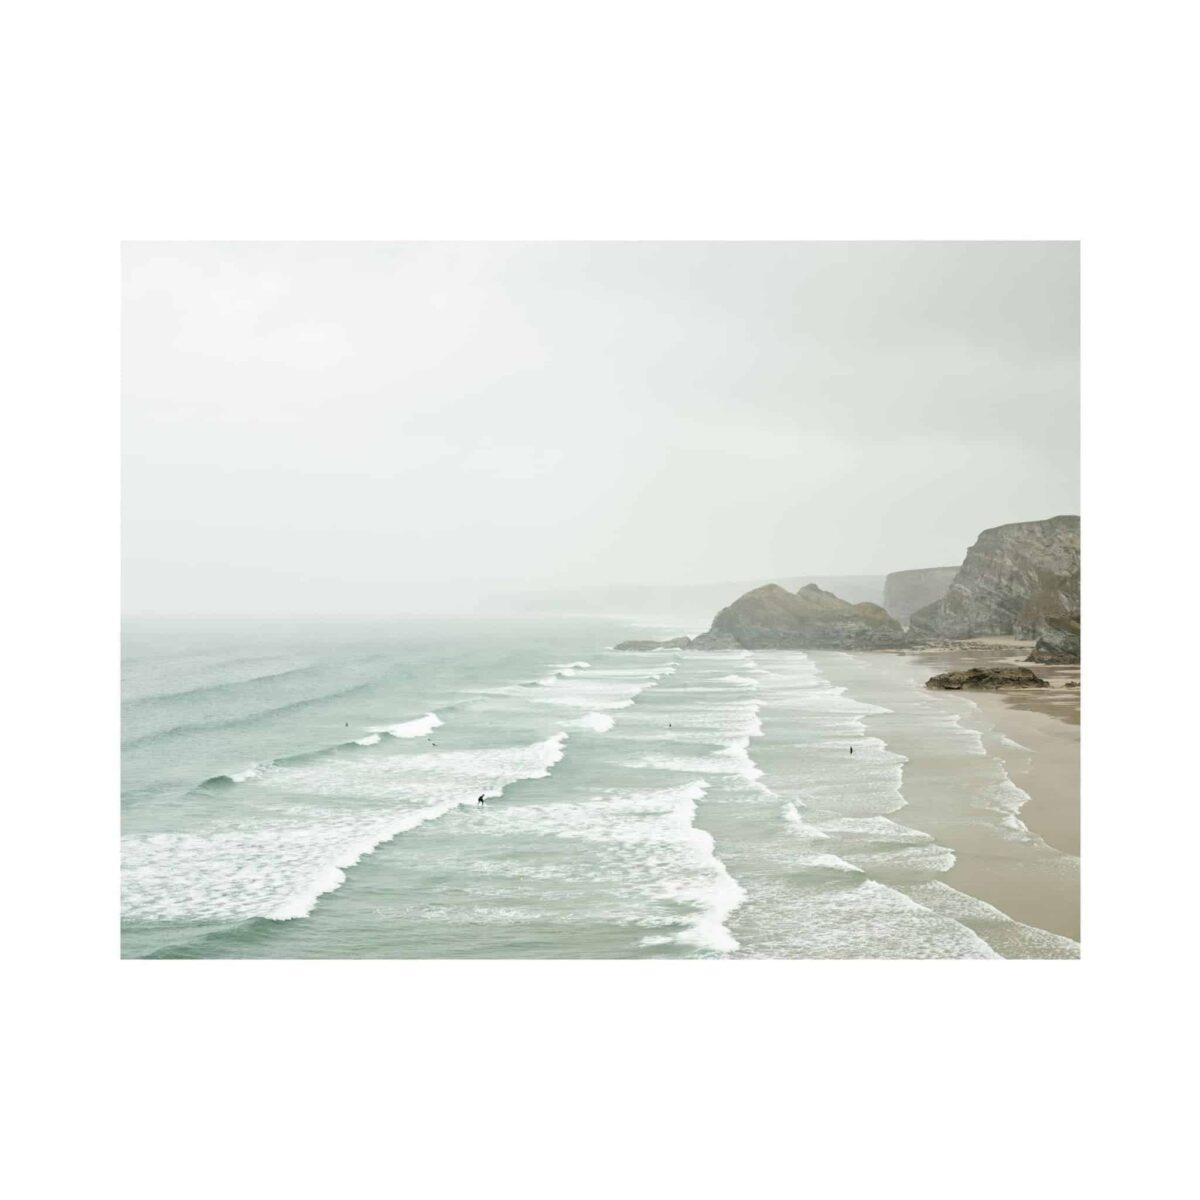 watergate-bay-a1-print-only-tom-shaw-another-country_ac293525-77e9-4884-95e7-933f2fb3edd9.jpg